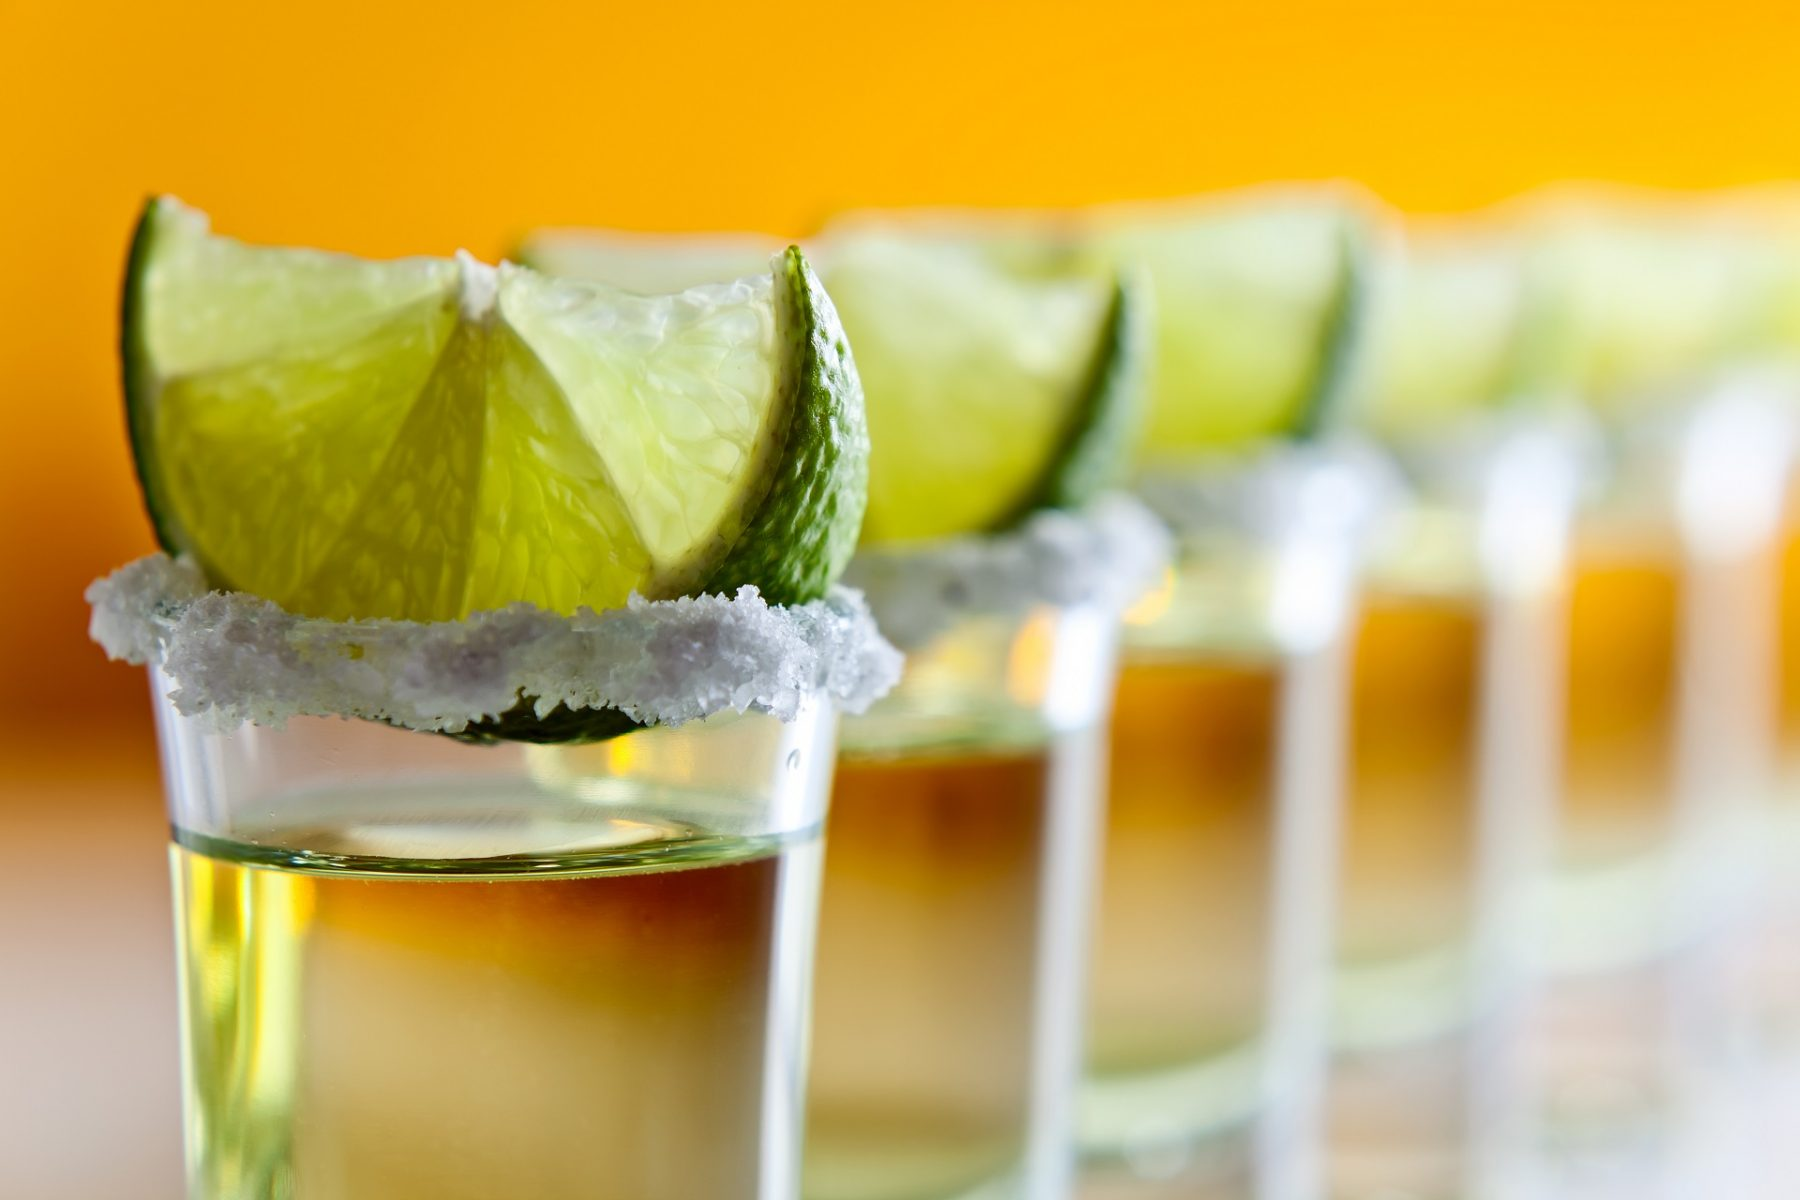 tequila shots hd wallpaper 66321